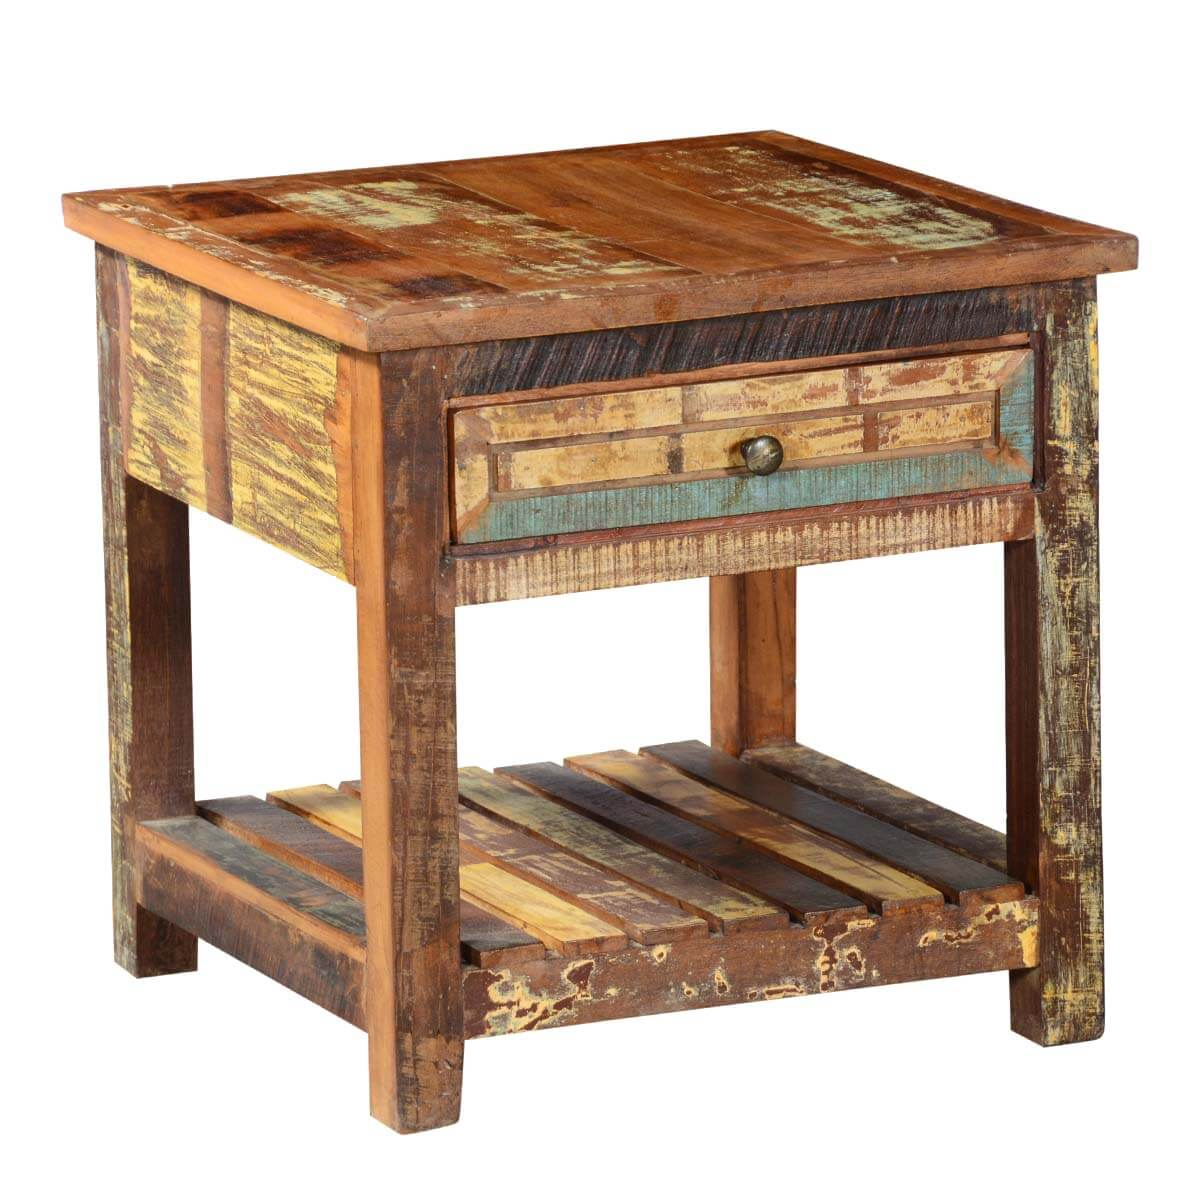 Reclaimed Wood End Tables ~ Rustic reclaimed wood tier bedside weathered end table